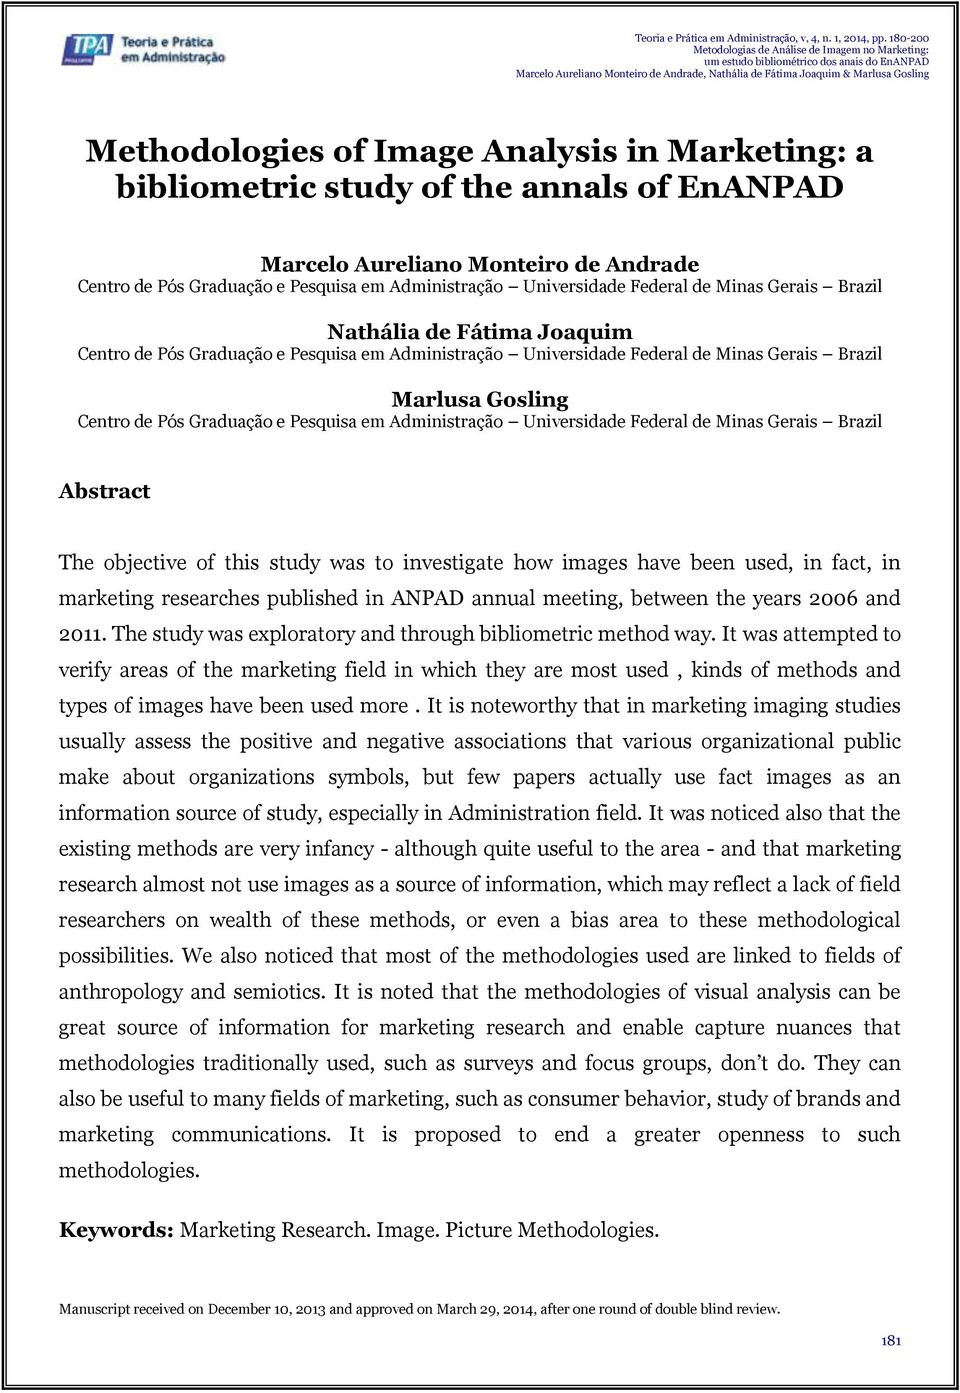 Pesquisa em Administração Universidade Federal de Minas Gerais Brazil Abstract The objective of this study was to investigate how images have been used, in fact, in marketing researches published in